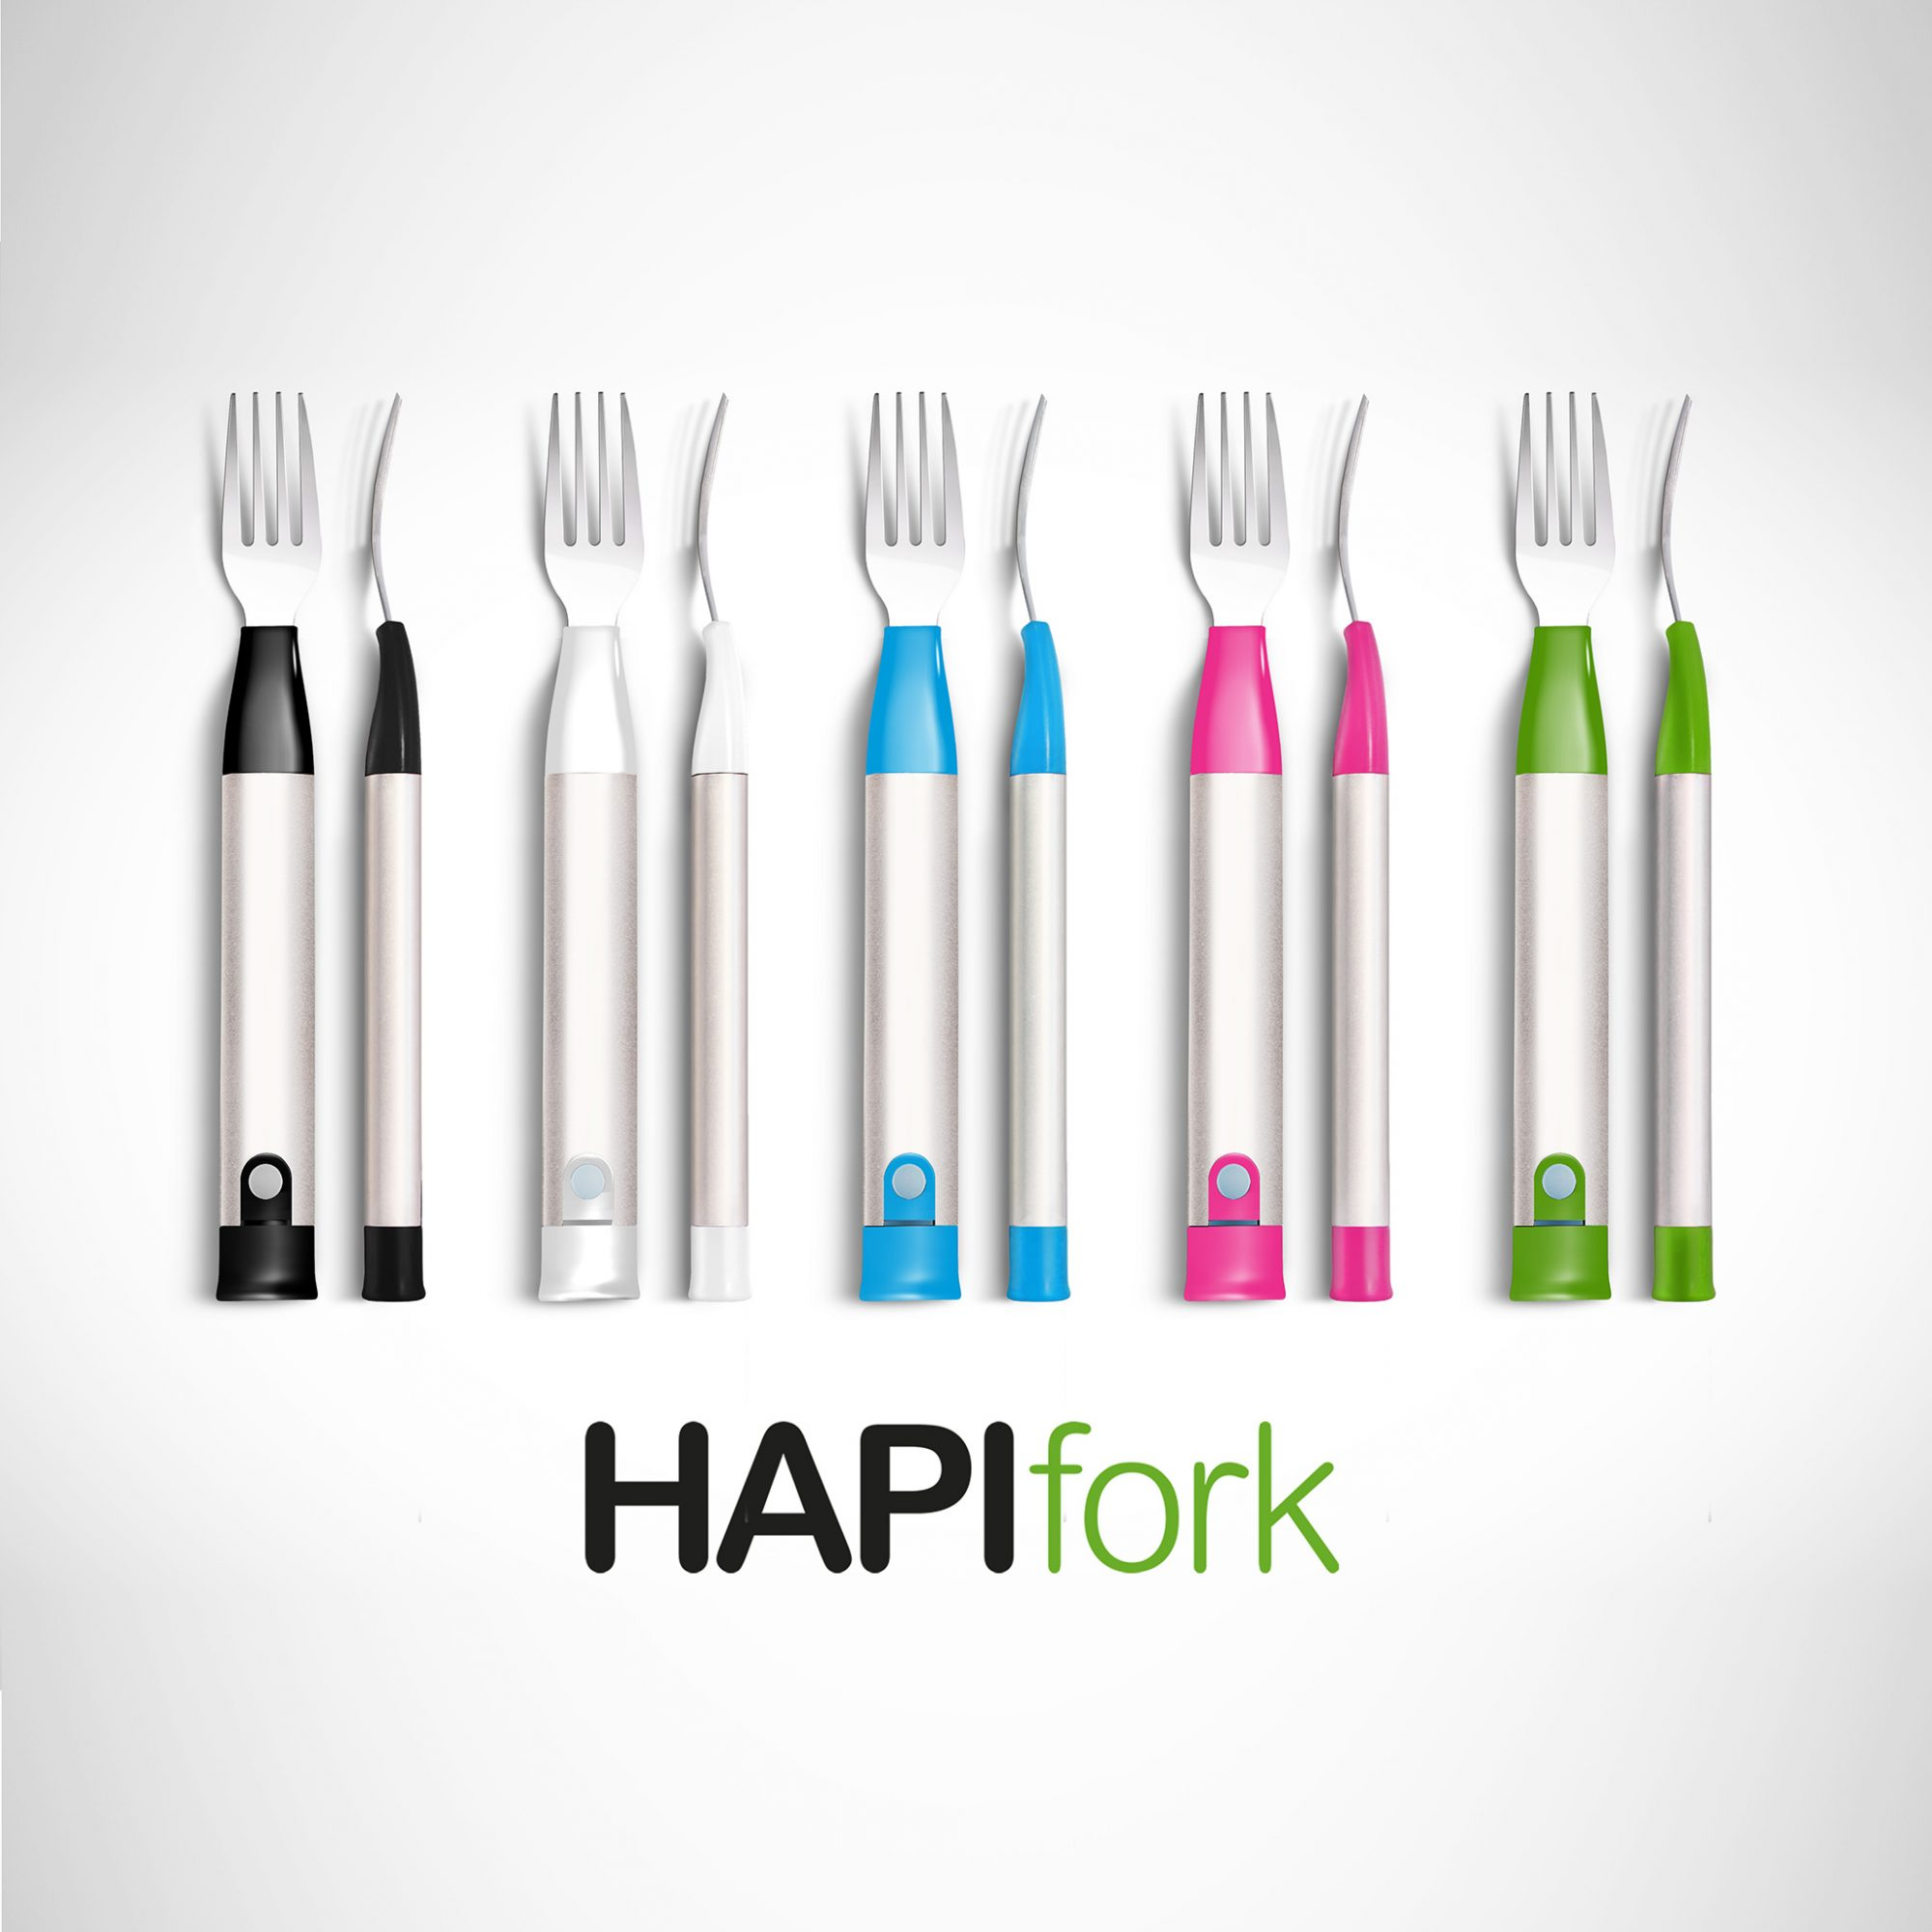 FWX THE SHOCKING FORK THAT WILL MAKE YOU EAT MORE SLOWLY HAPIFORK